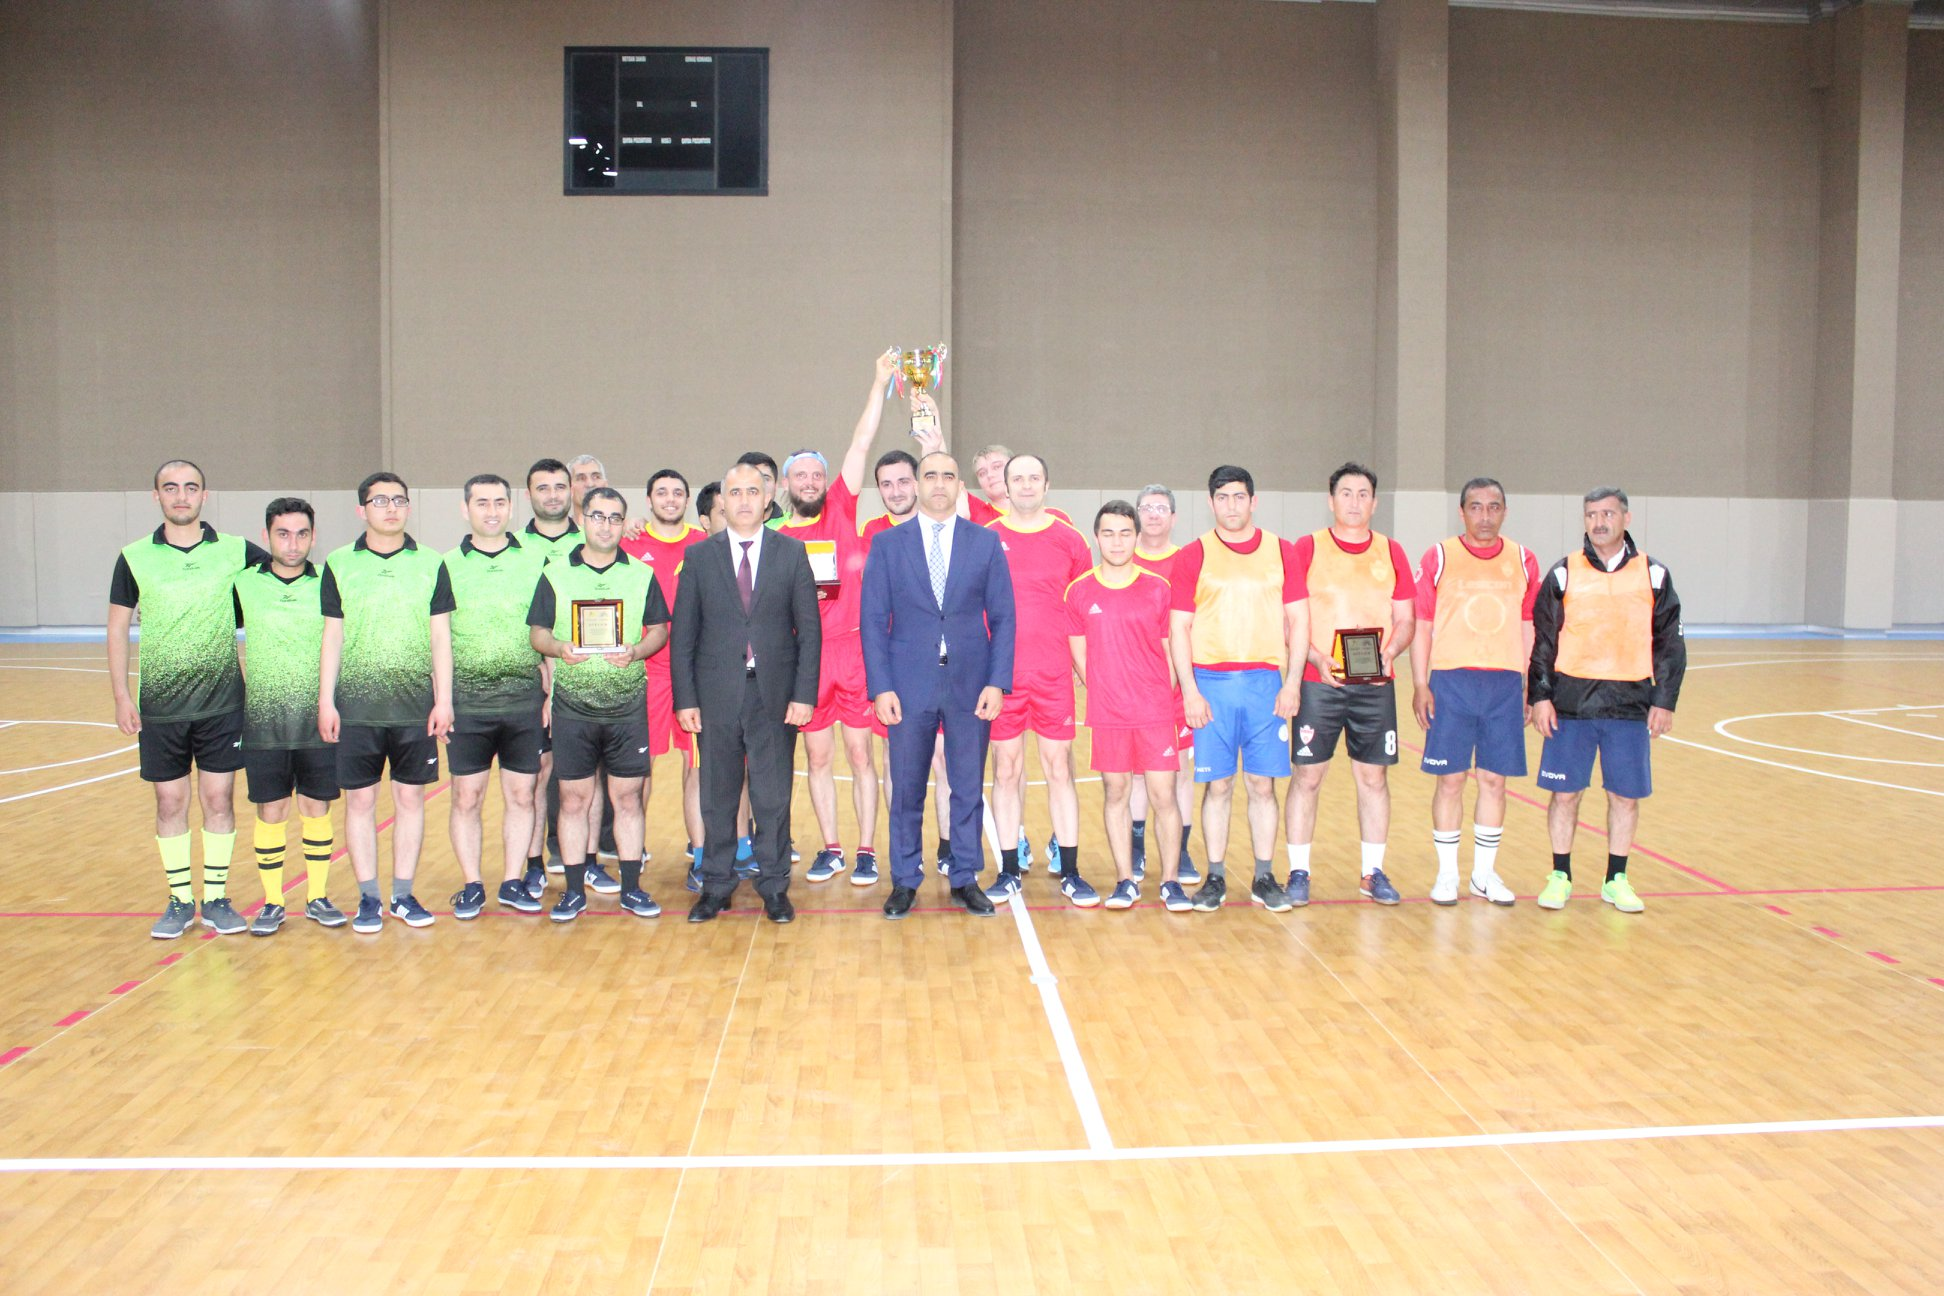 Chess players competed for the futsal championship